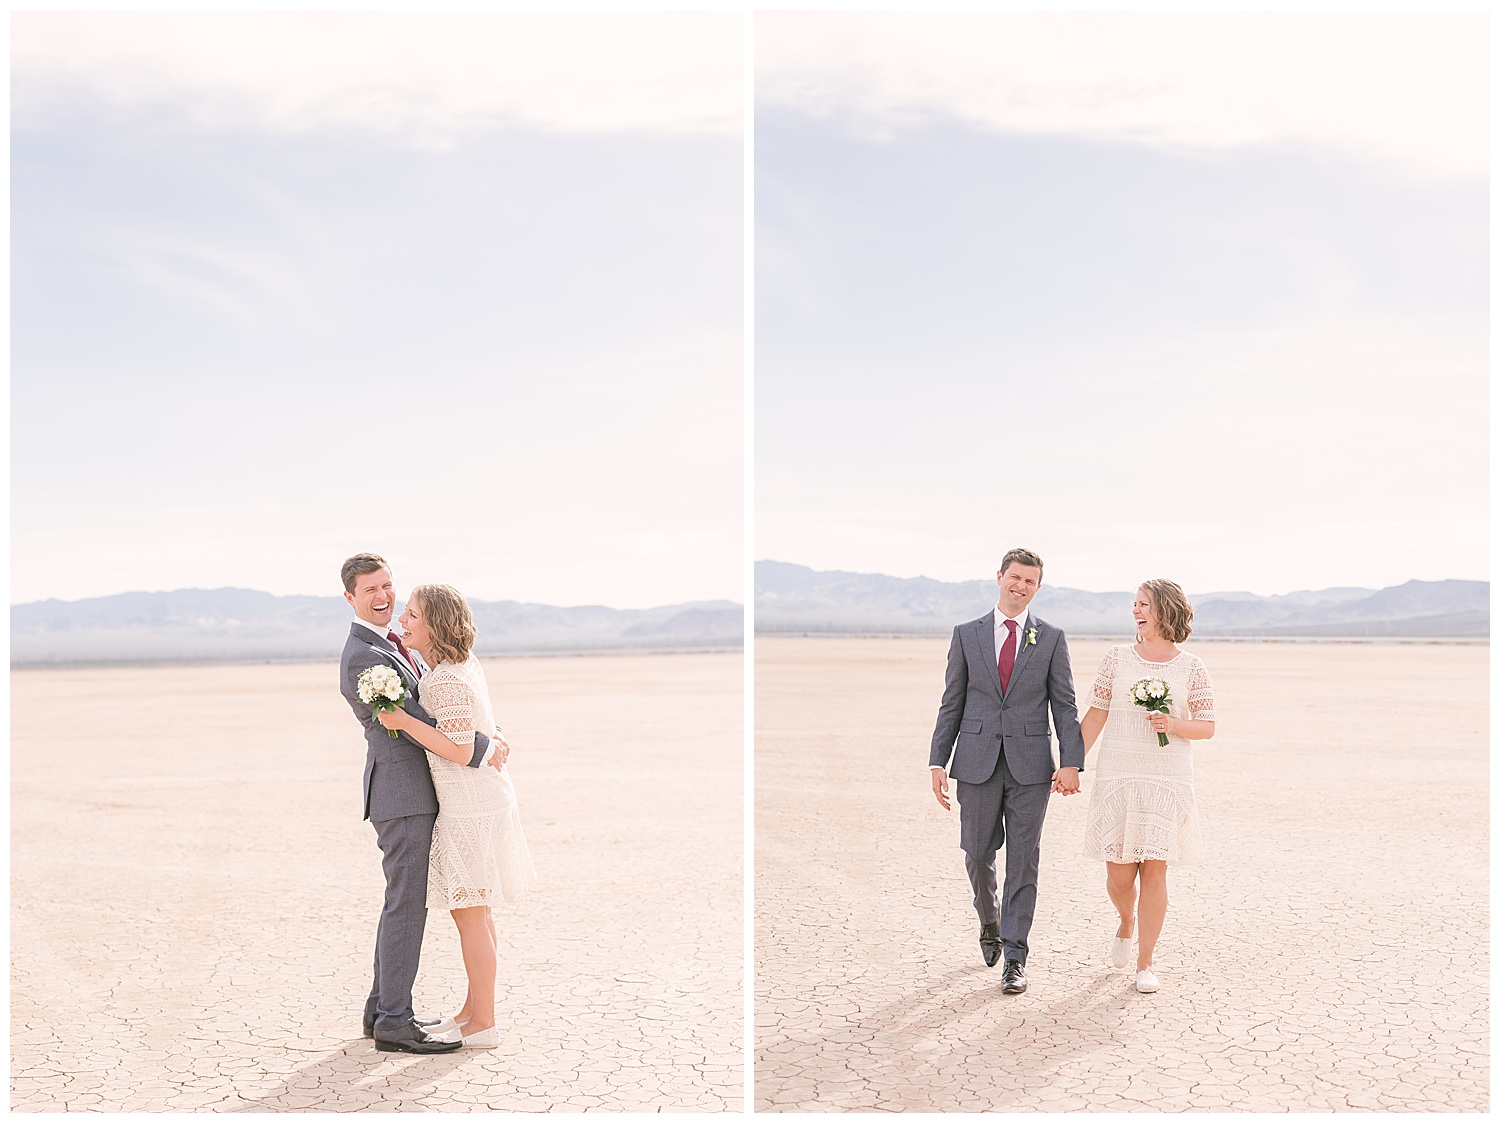 dry-lake-bed-las-vegas-elopement-photographer-11.jpg